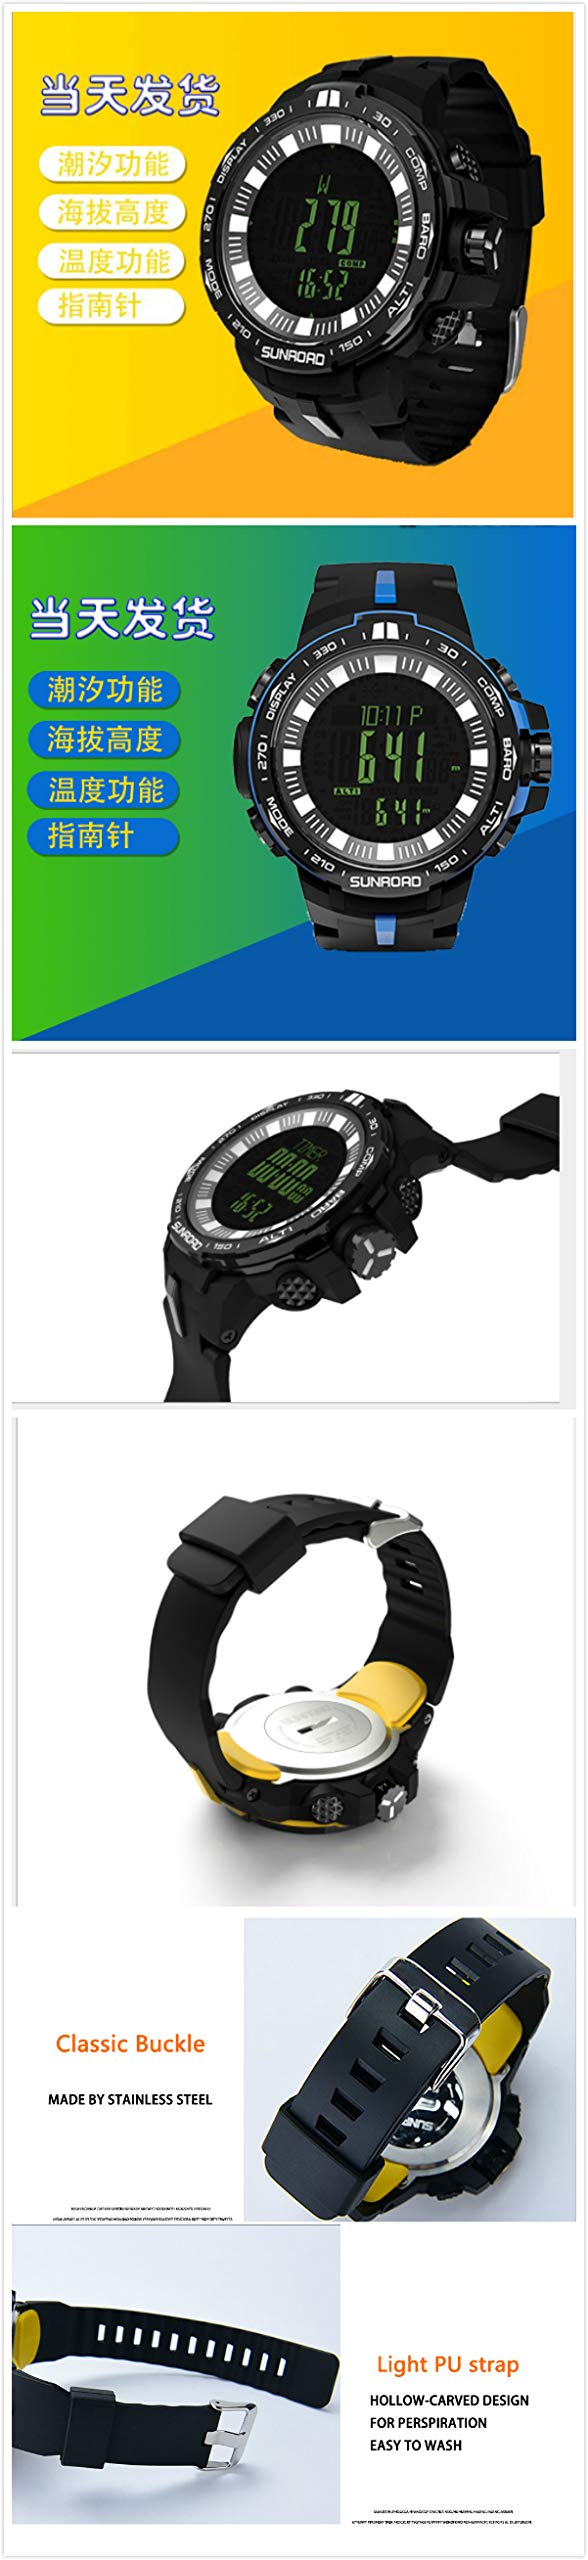 FR861B SUNROAD Mens Watches Sport Watch Digital Altimeter Barometer Compass Thermometer Pedometer Clock by YARUIFANSEN